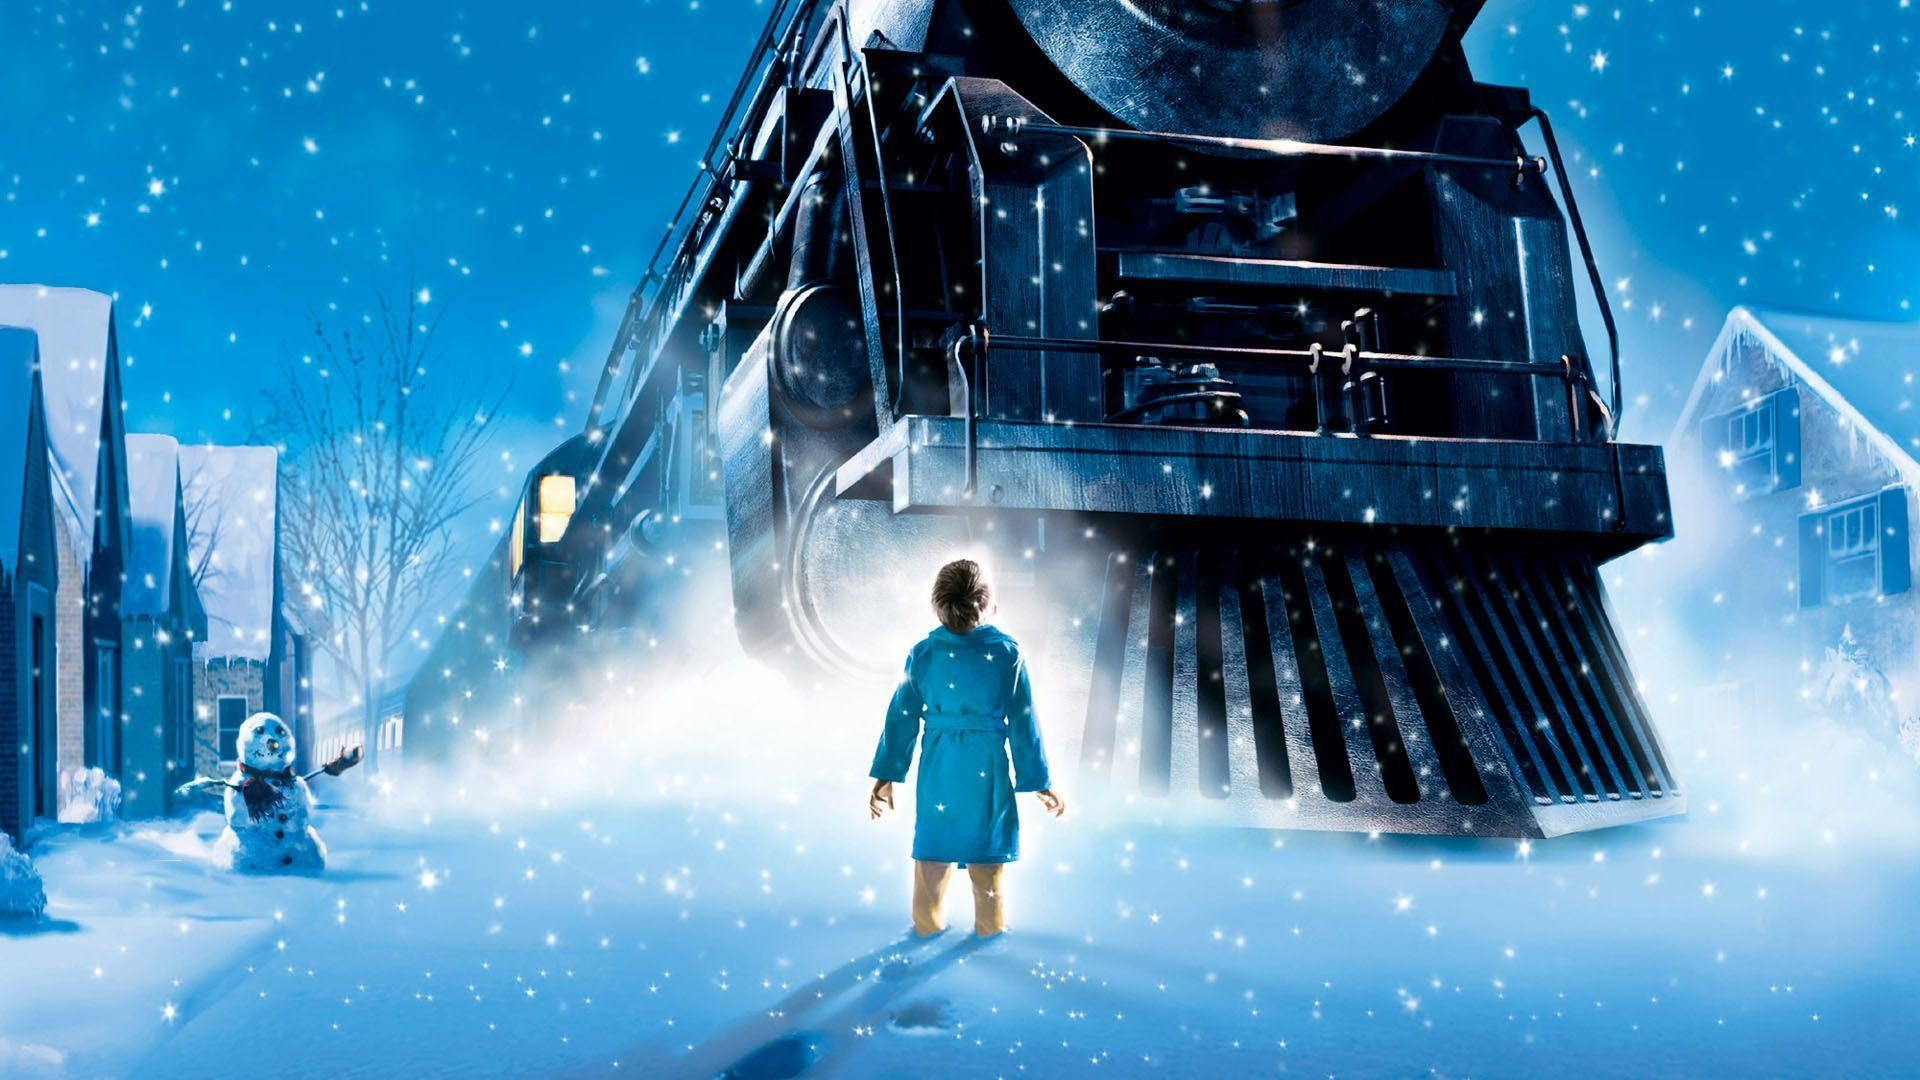 1920x1080 THE POLAR EXPRESS wallpaper |  | 102946 | WallpaperUP